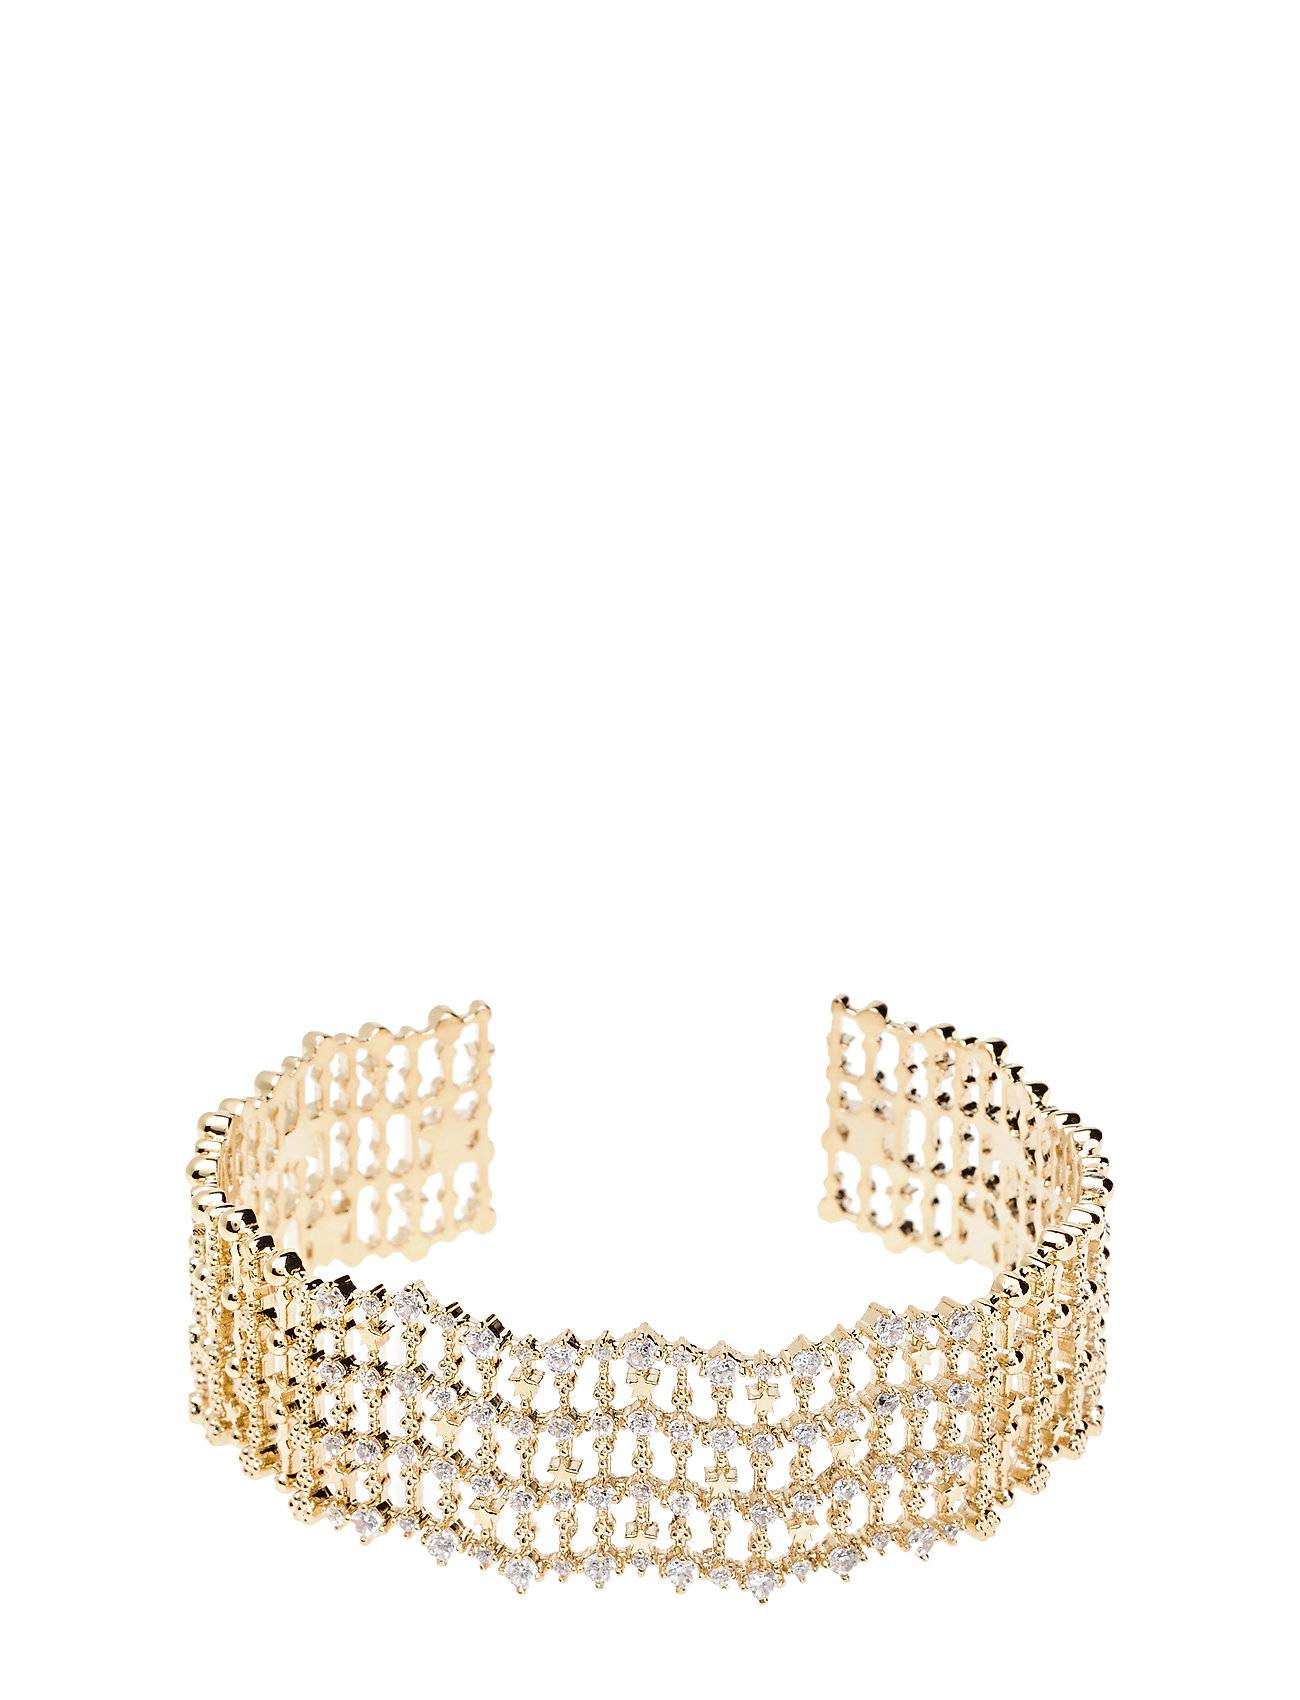 LILY AND ROSE Capella Bracelet - Crystal Accessories Jewellery Bracelets Bangles Hopea LILY AND ROSE